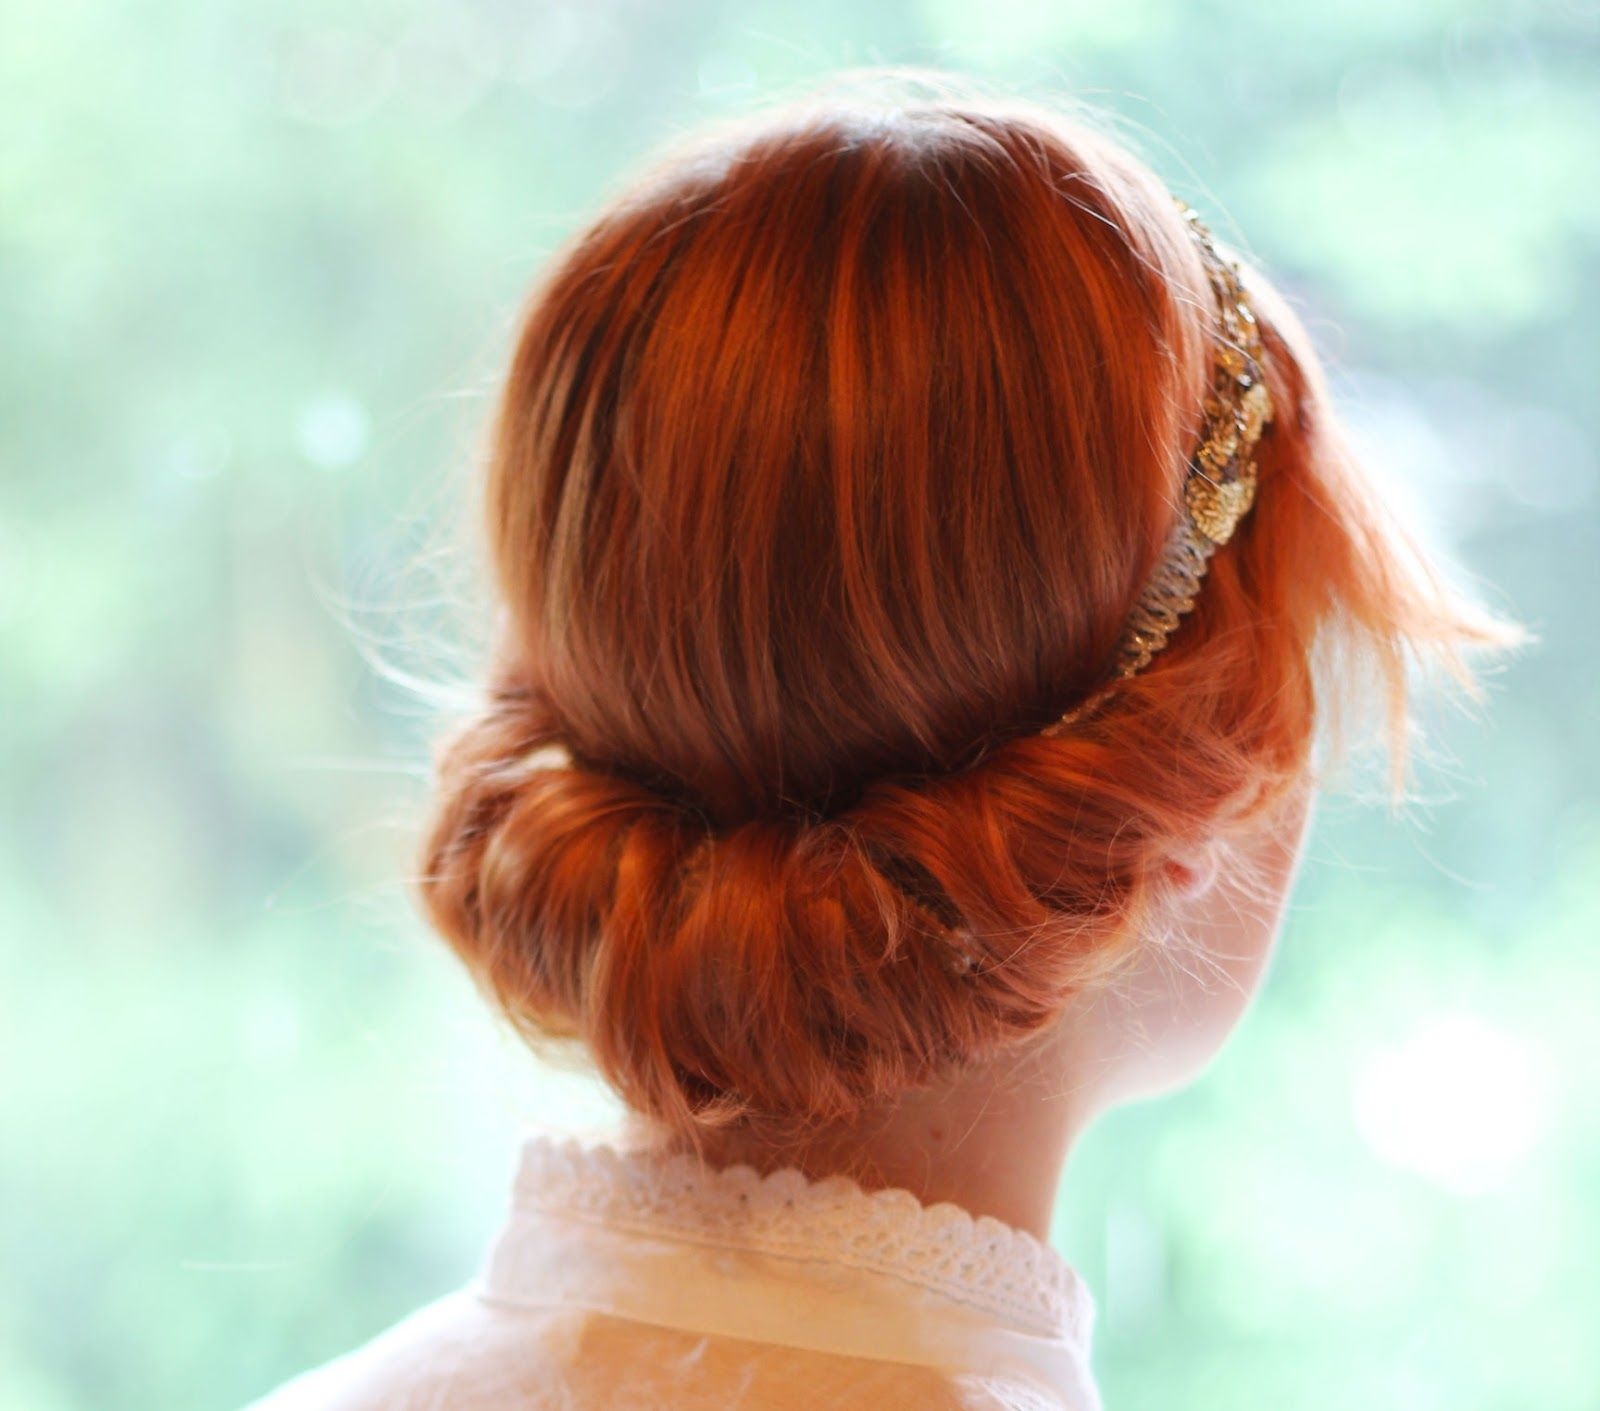 Lana red vintage hairdo tutorial hair styles to try pinterest